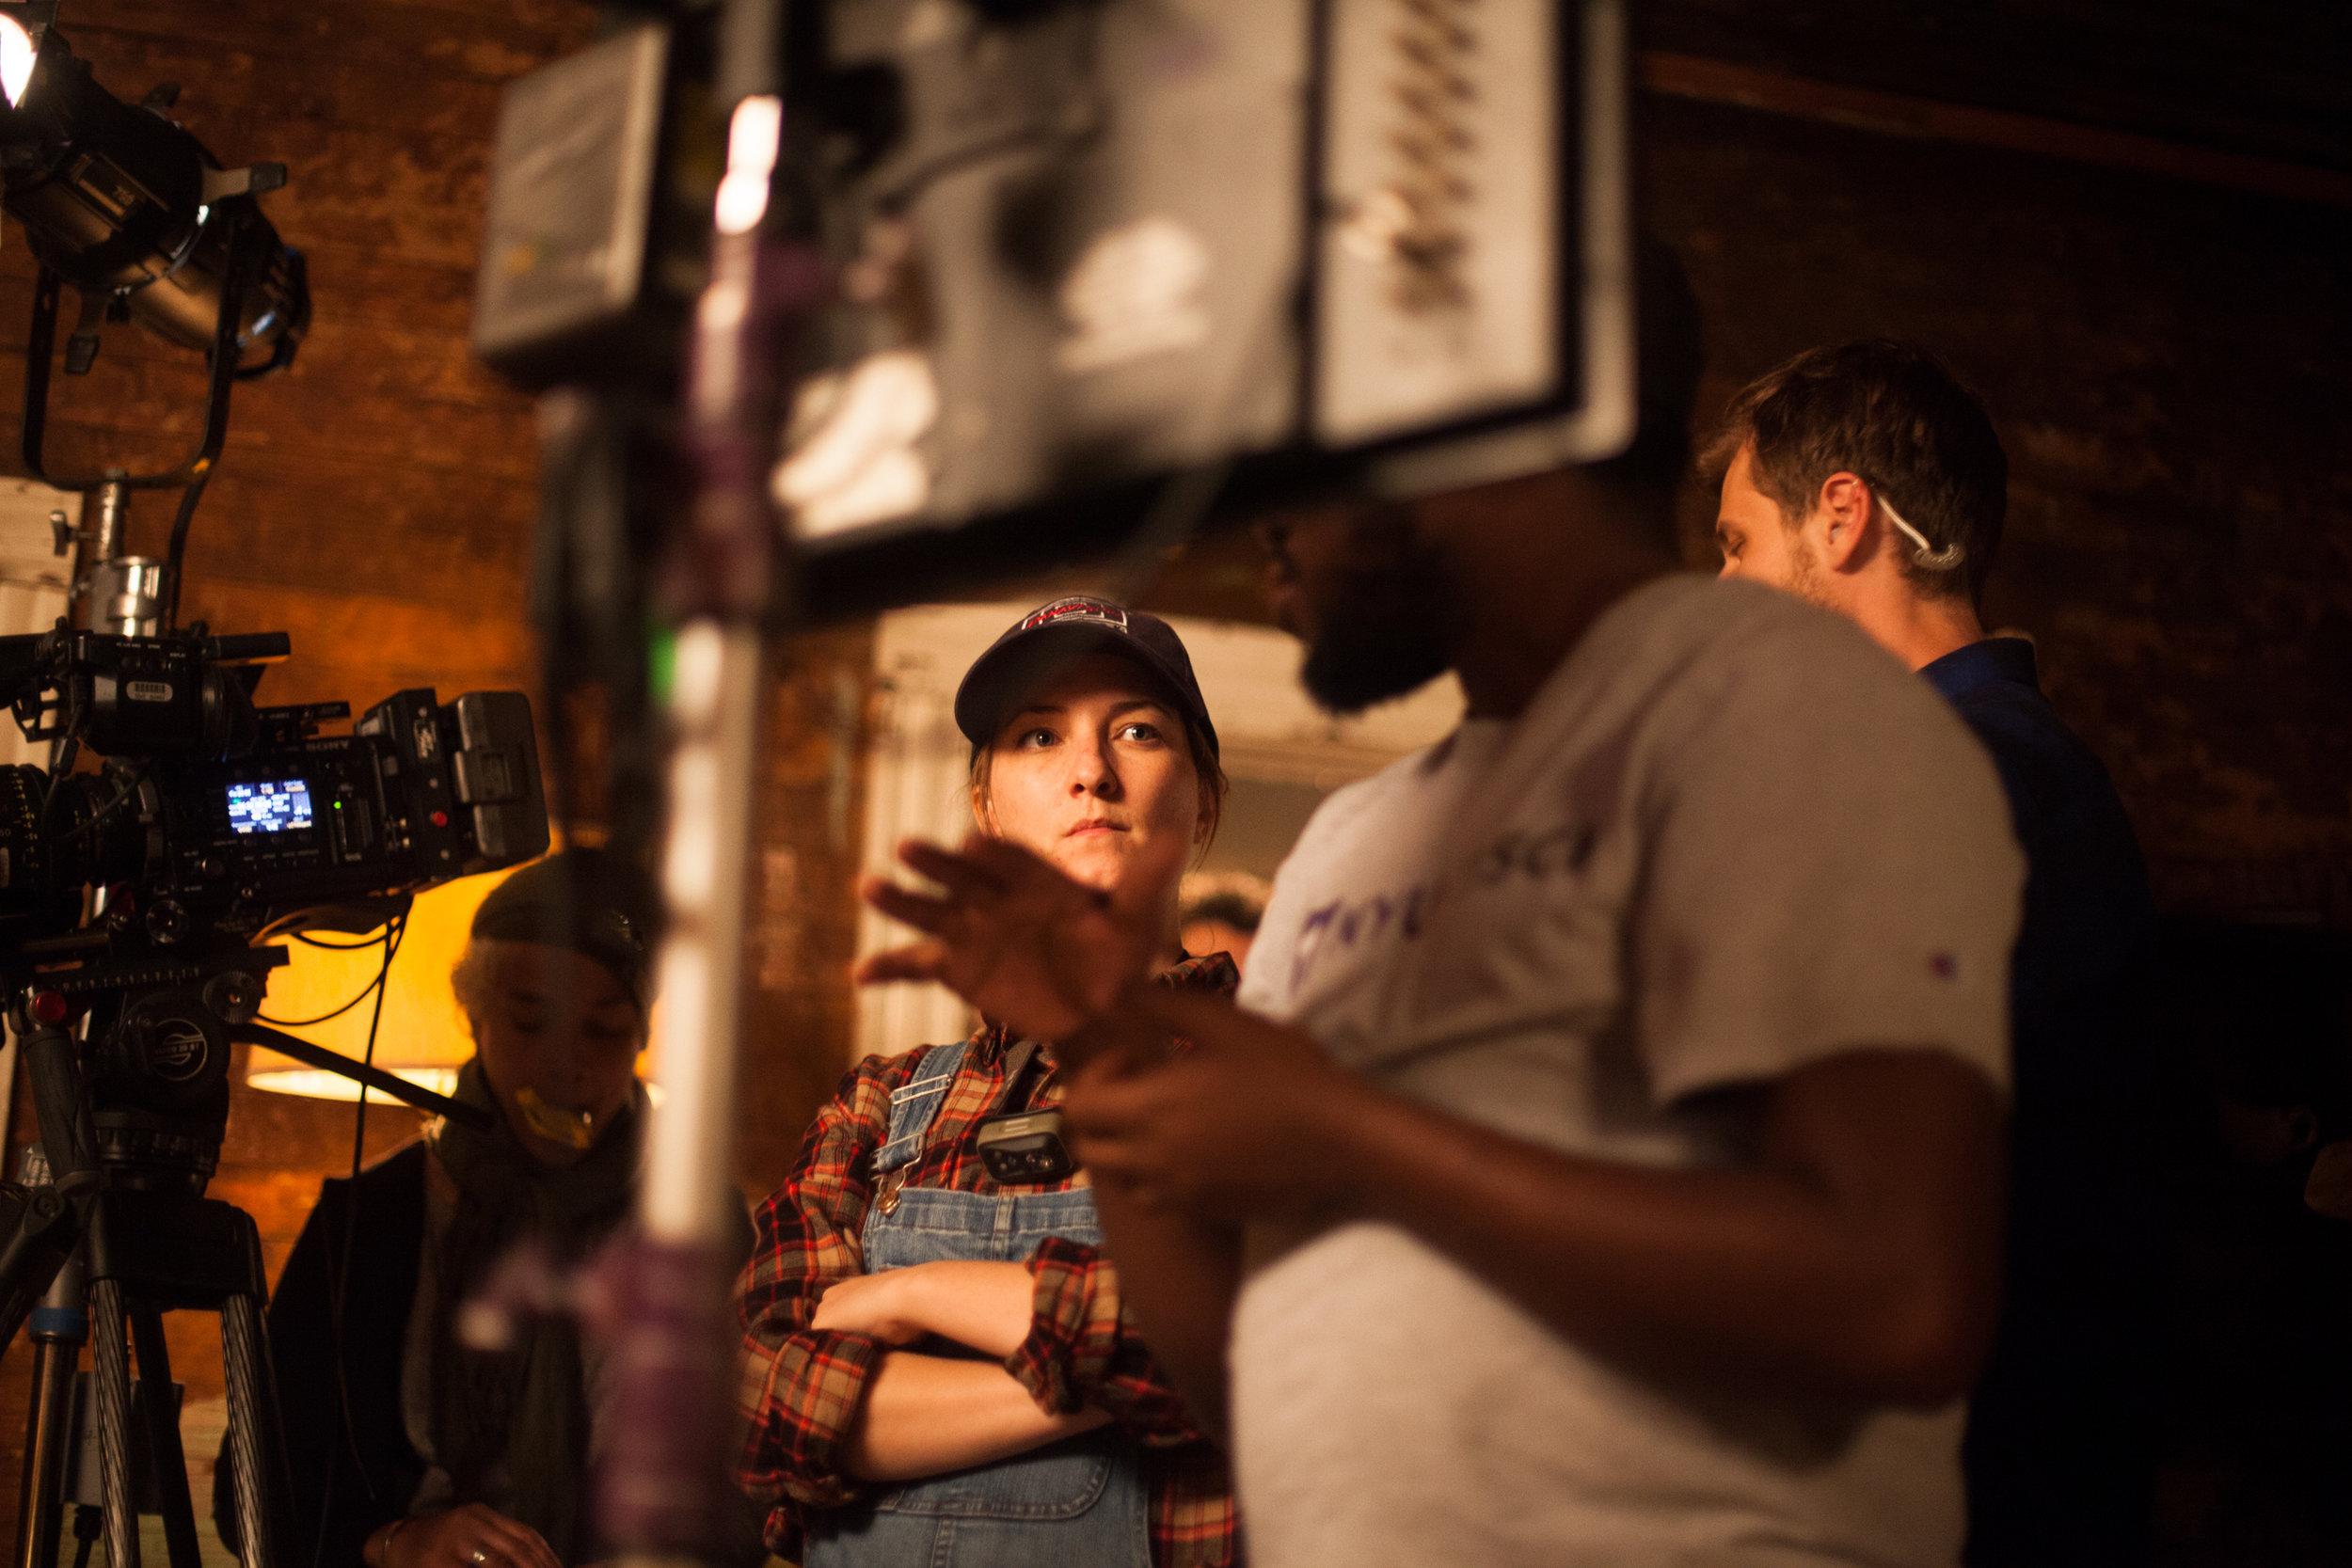 """DP Laura Valladao talking with writer/director Kevin Wilson Jr. with 1st AC Lin Que and key grip Sam Wolff in the background on the set of """"My Nephew Emmett""""  Canon 5d"""